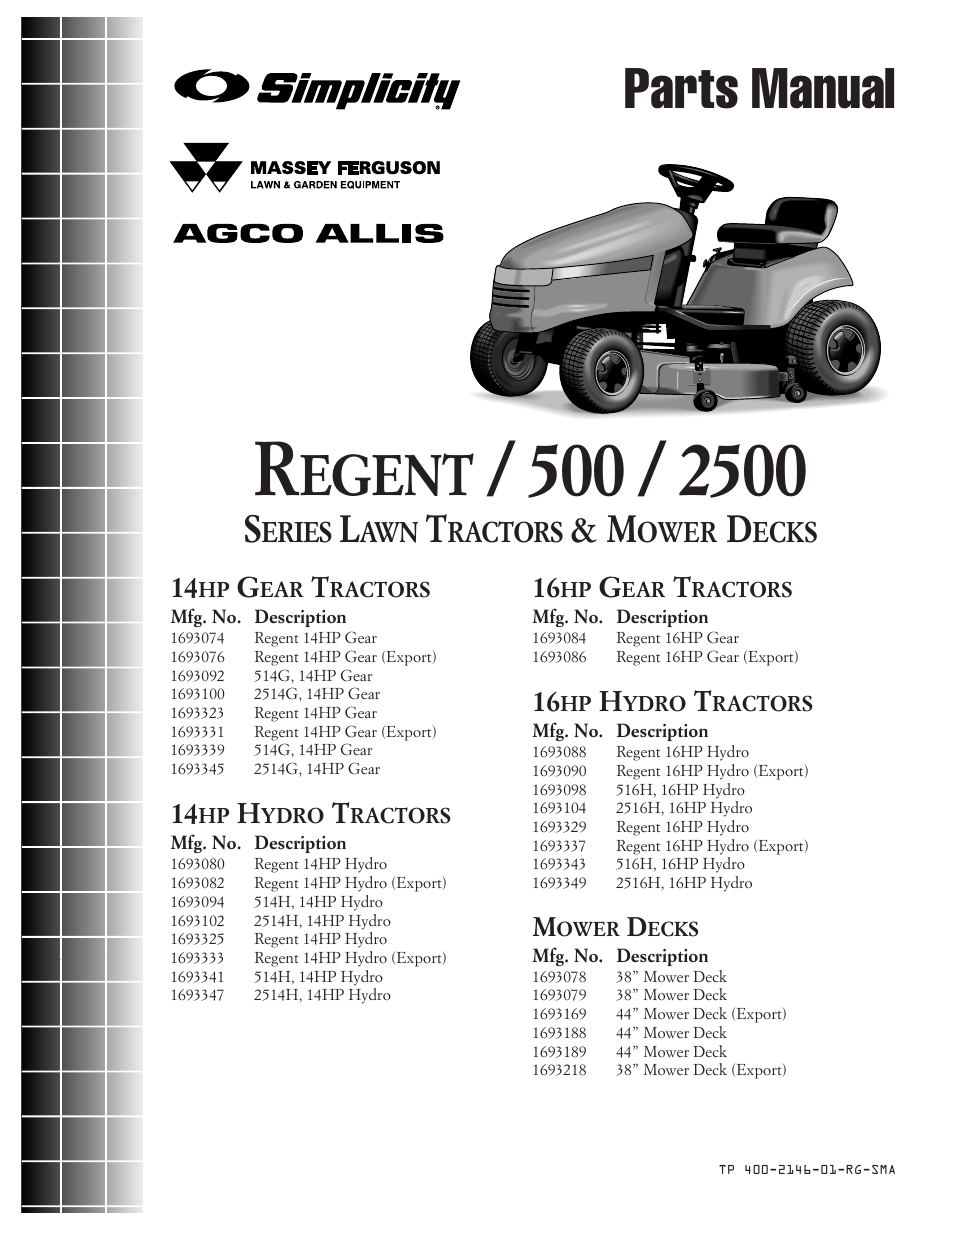 Simplicity REGENT 500 User Manual | 60 pages